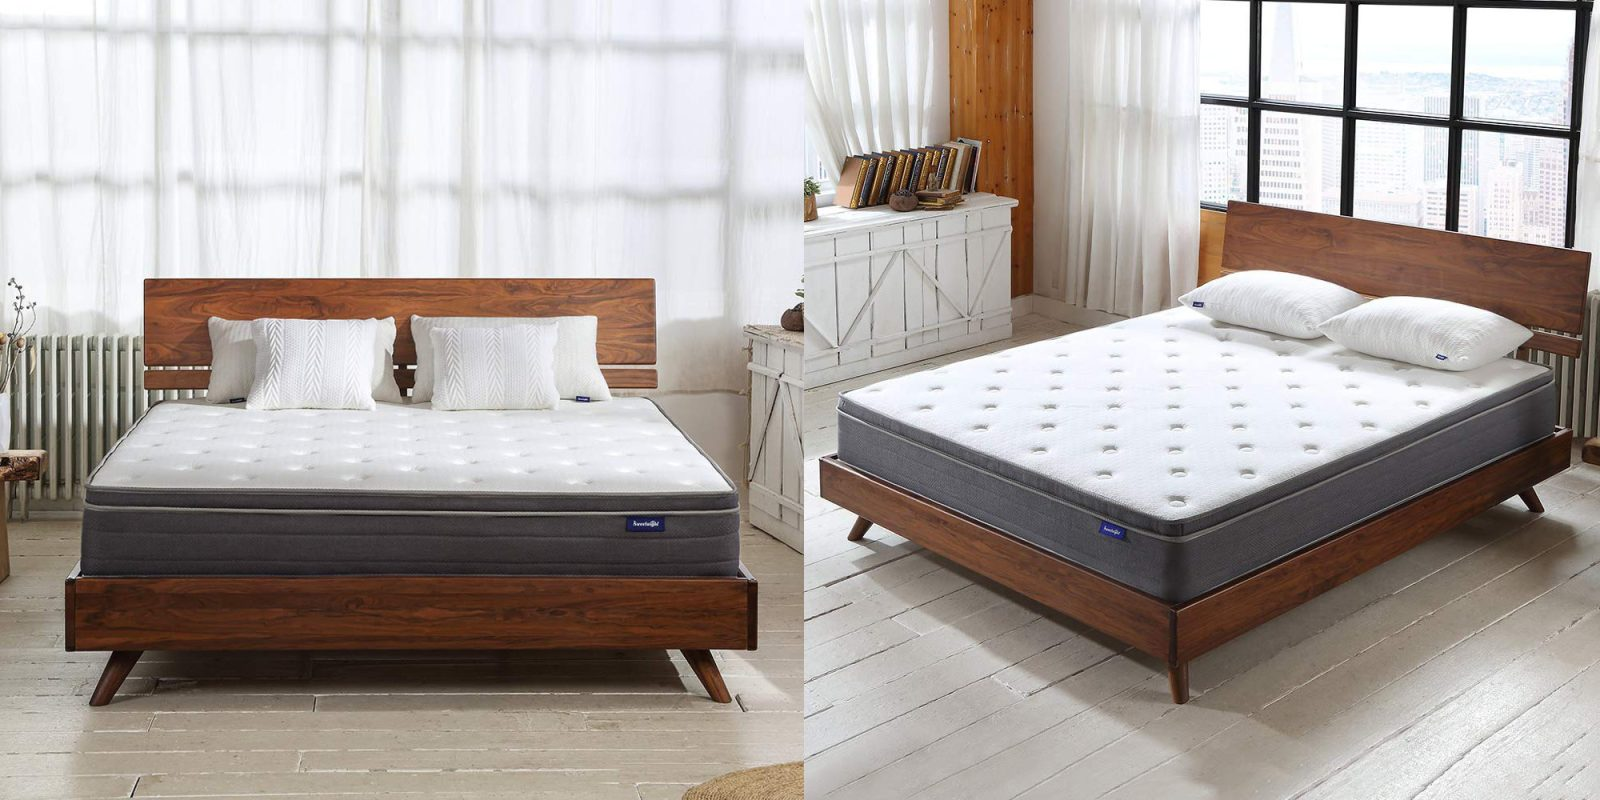 Refresh your mattress and pillows in today's Gold Box from $33.50 (20% off)